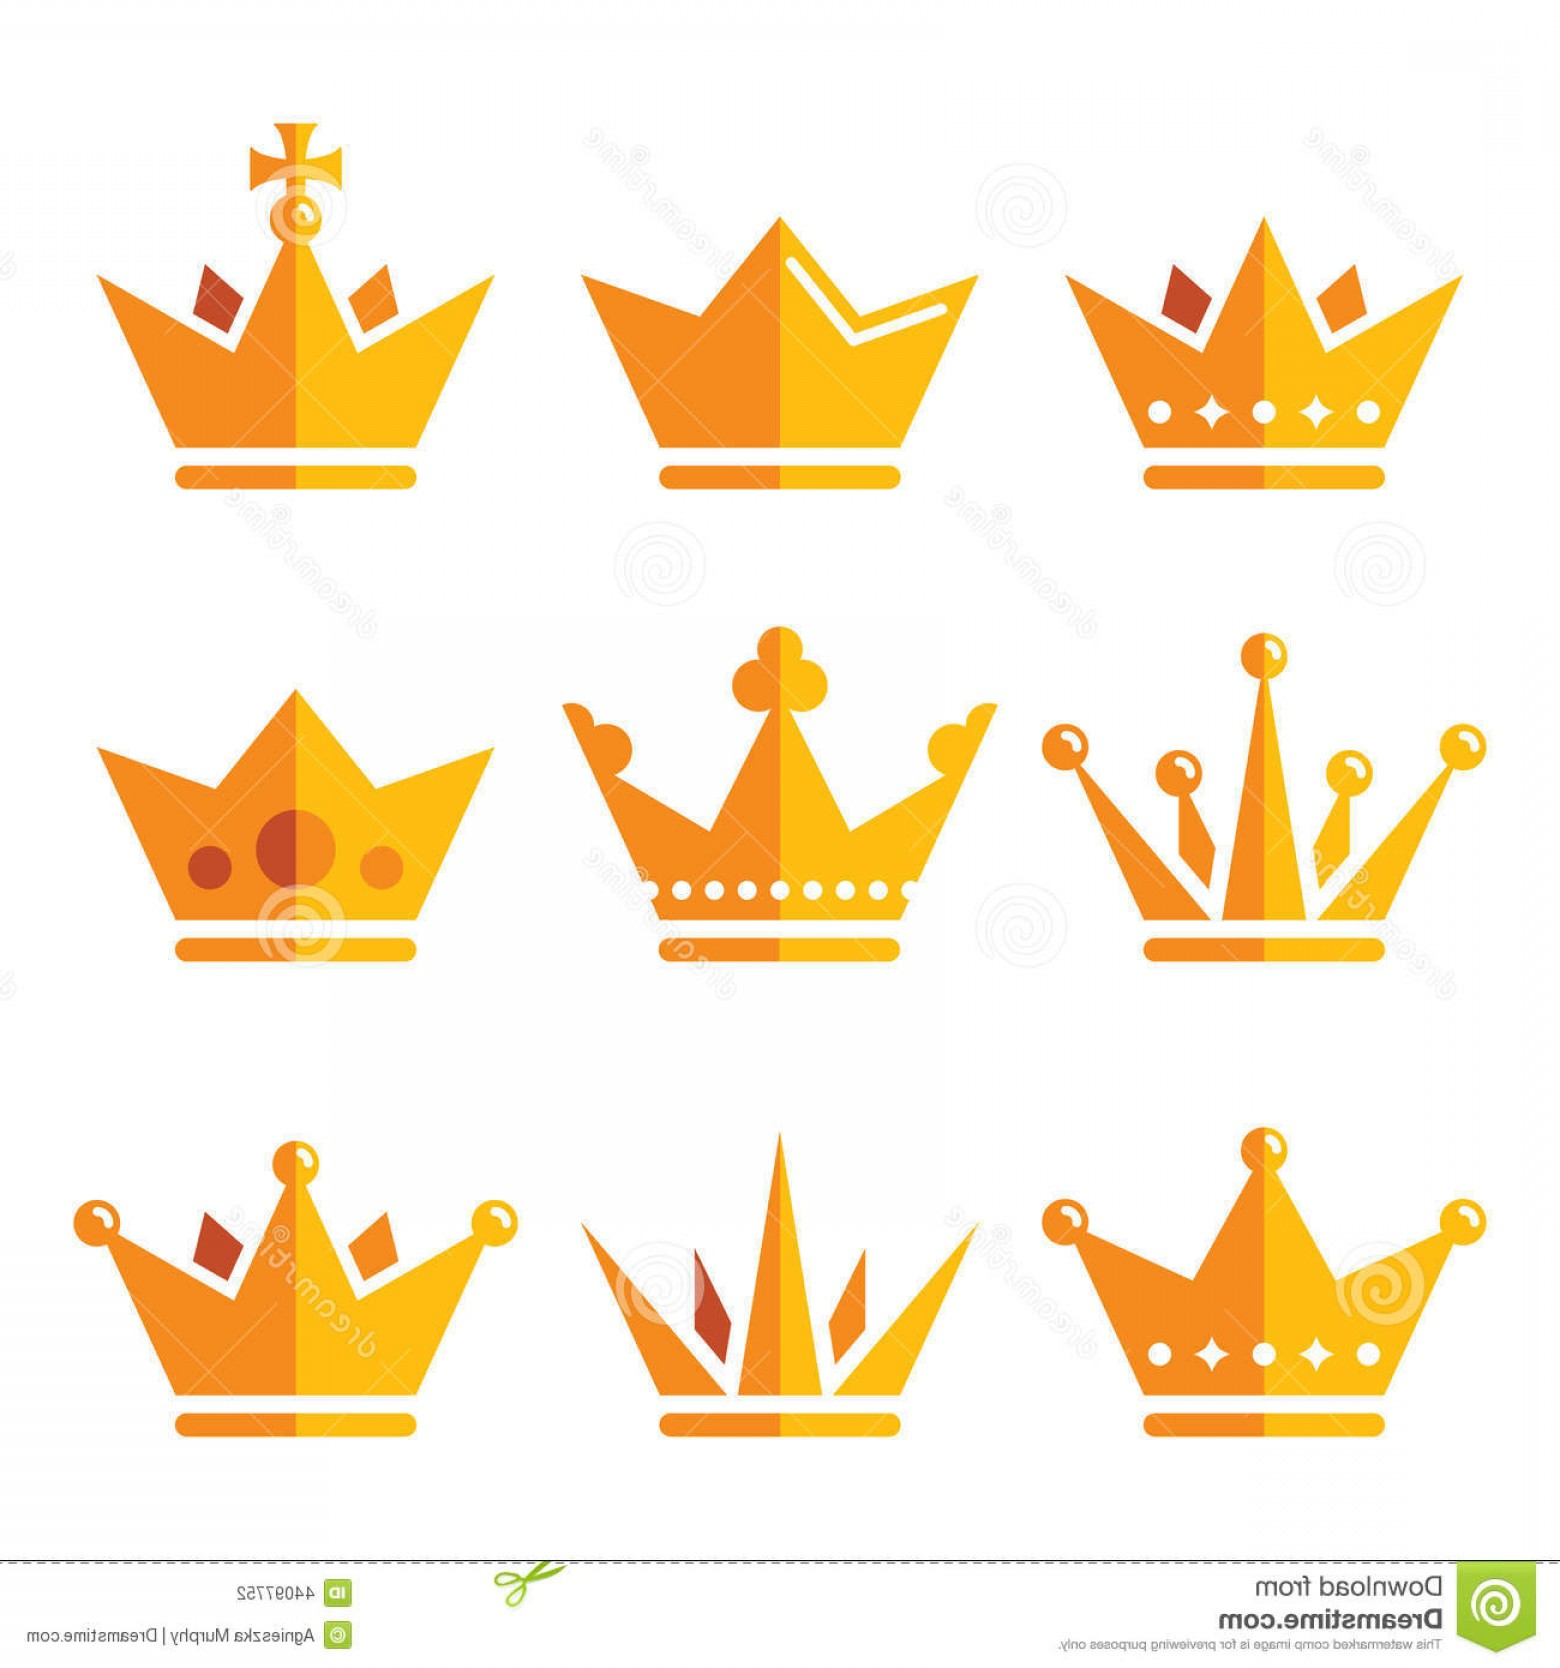 1560x1668 Stock Illustration Gold Crown Royal Family Icons Set King Queen